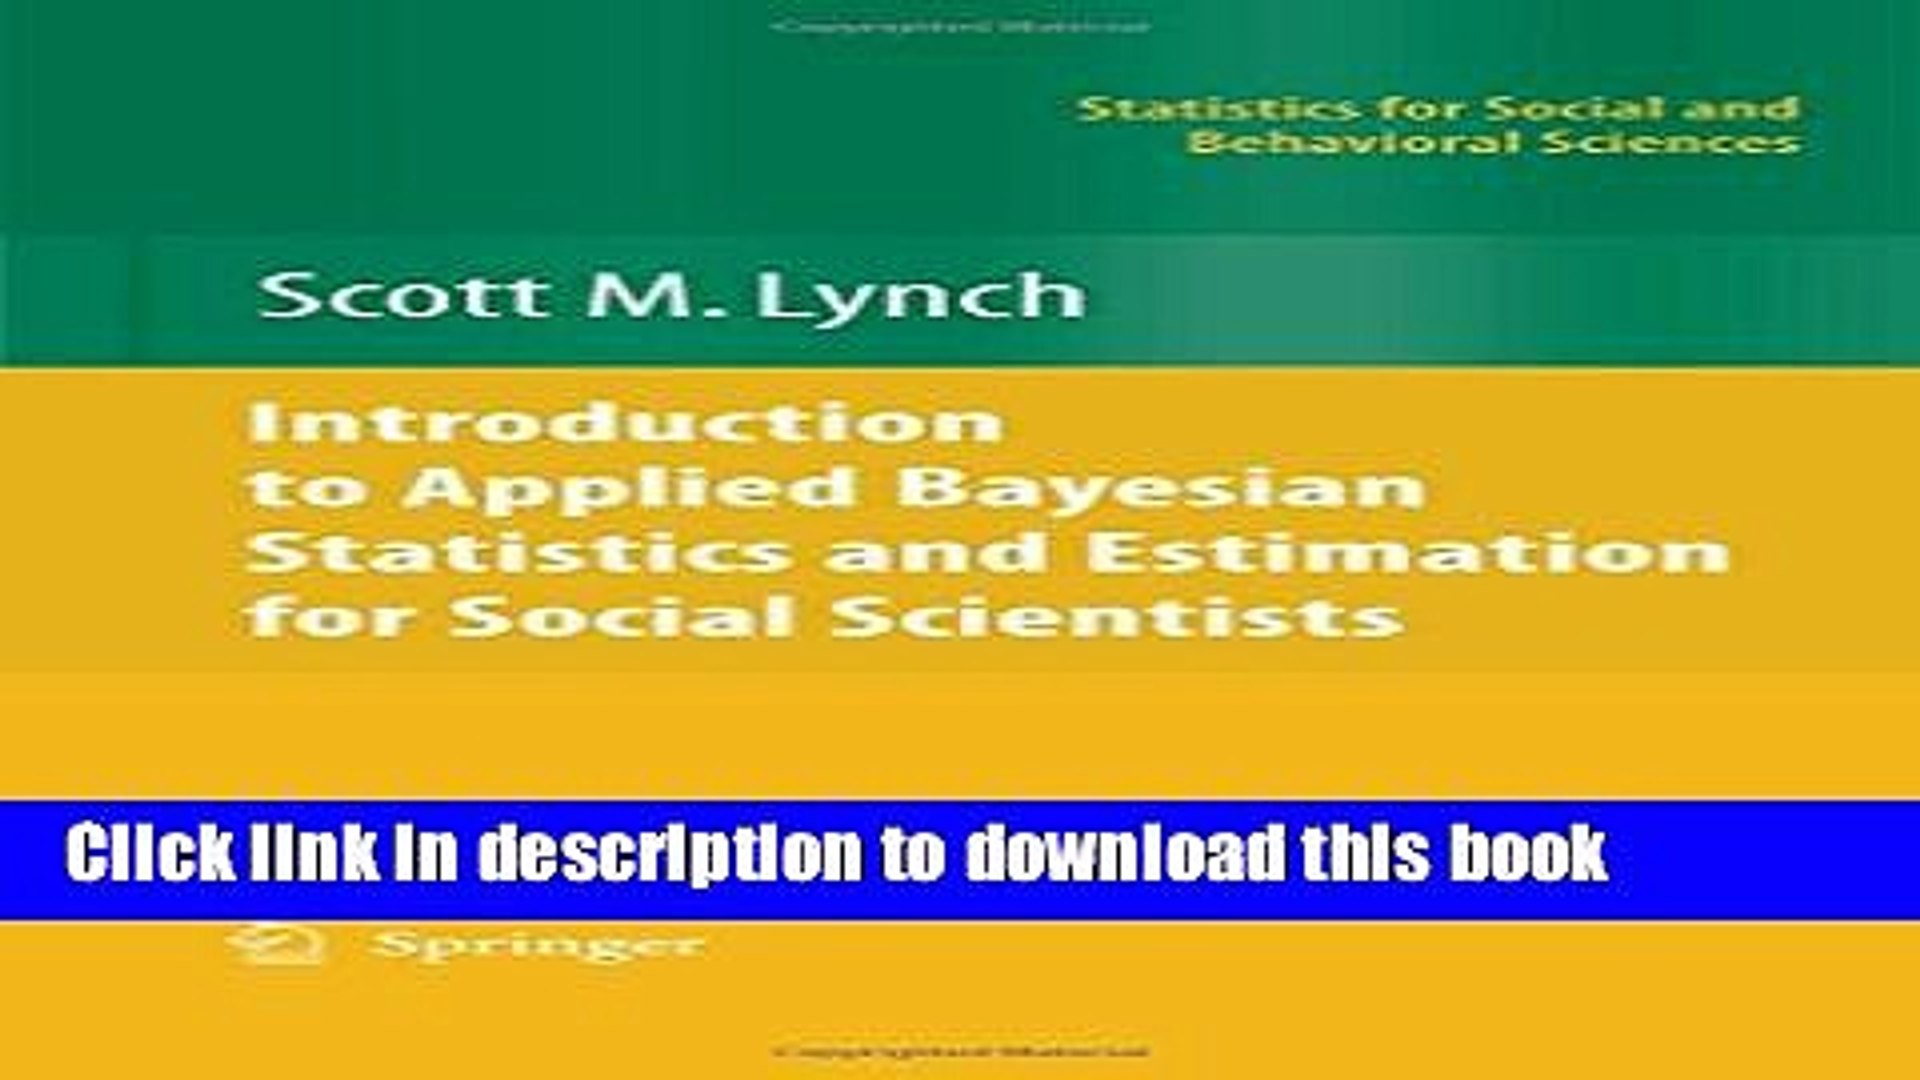 [PDF] Introduction to Applied Bayesian Statistics and Estimation for Social  Scientists [Read] Online